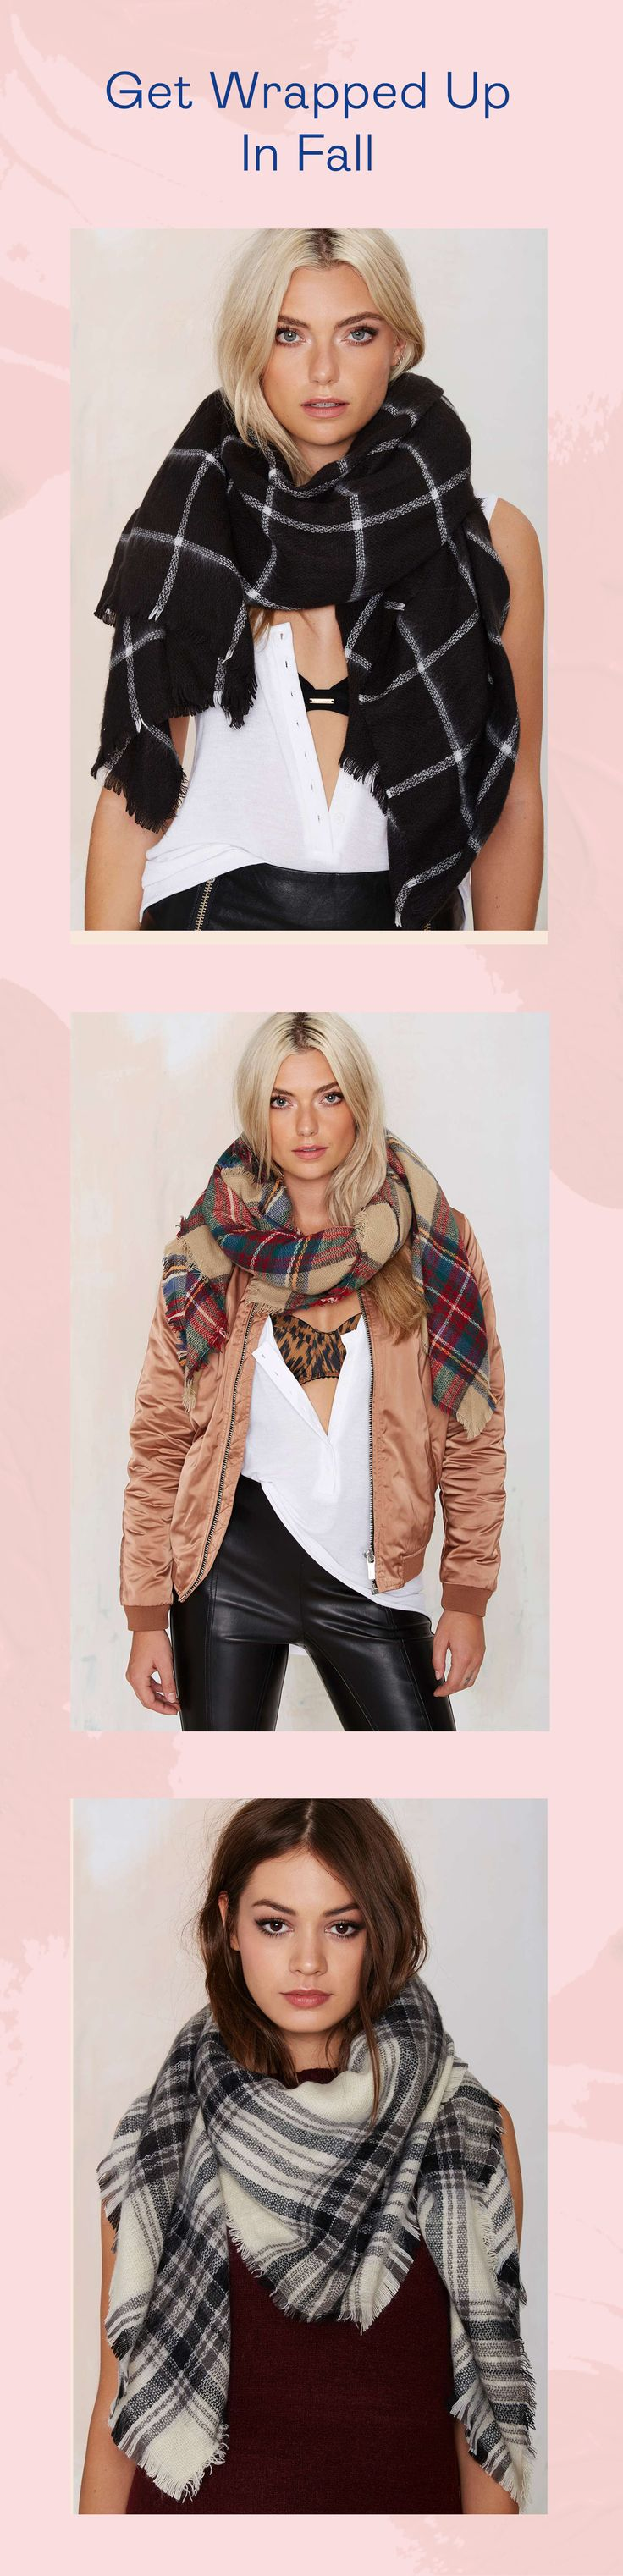 Get wrapped up in fall! Perfect with skinnies, a leather jacket and your favorite pair of boots.